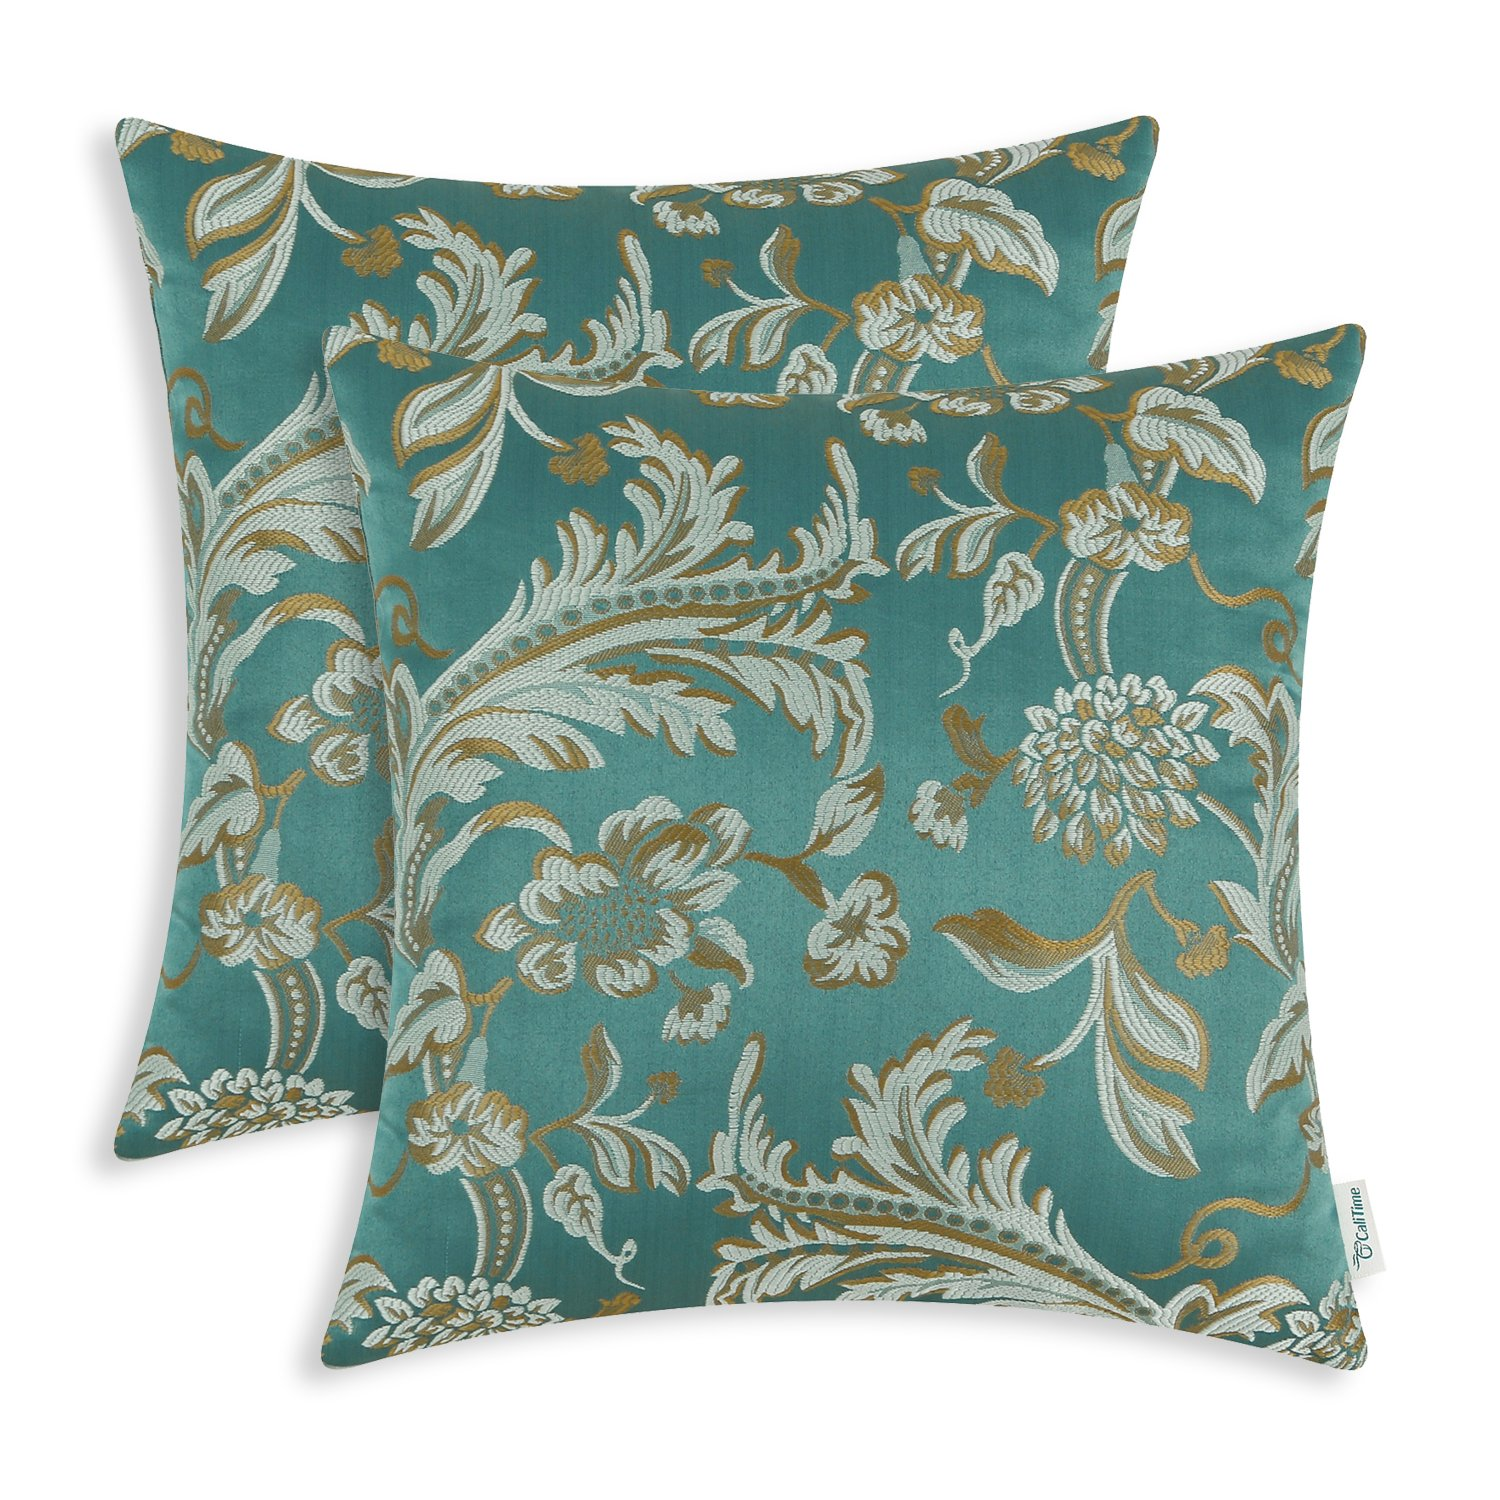 CaliTime Pack of 2 Throw Pillow Covers Cases for Couch Sofa Home Decor, Vintage Floral Leaves, 20 X 20 Inches, Teal